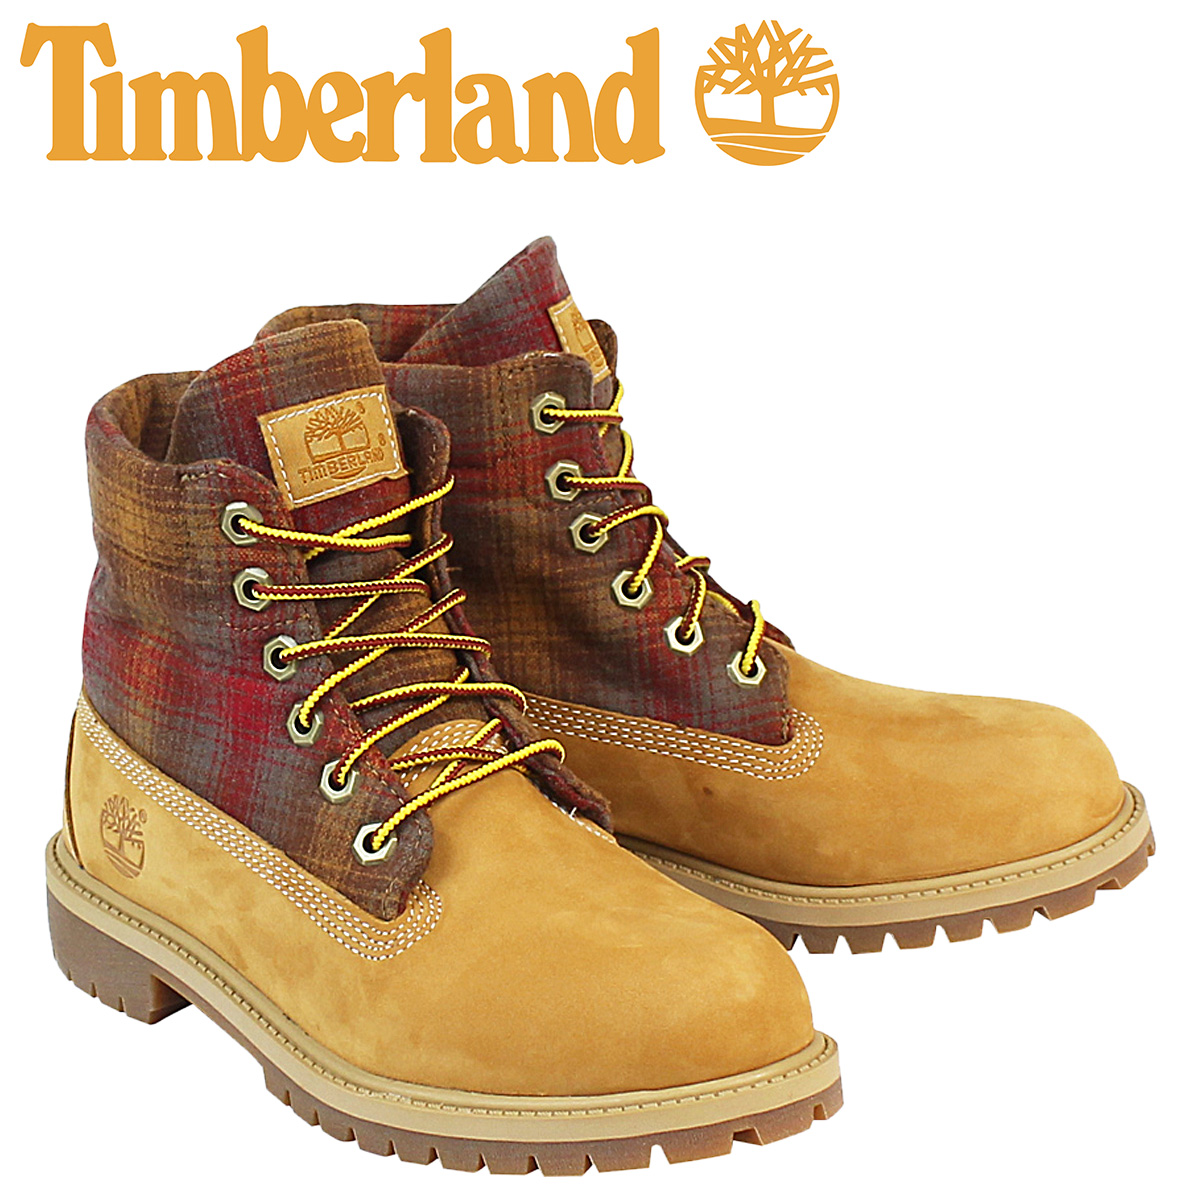 0acc277676 «Soon» «12   25 days stock» Timberland Timberland PENDLETON women s JUNIOR  ROLL TOP boots roll top boots Pendleton A13O6 M wise wheat. «